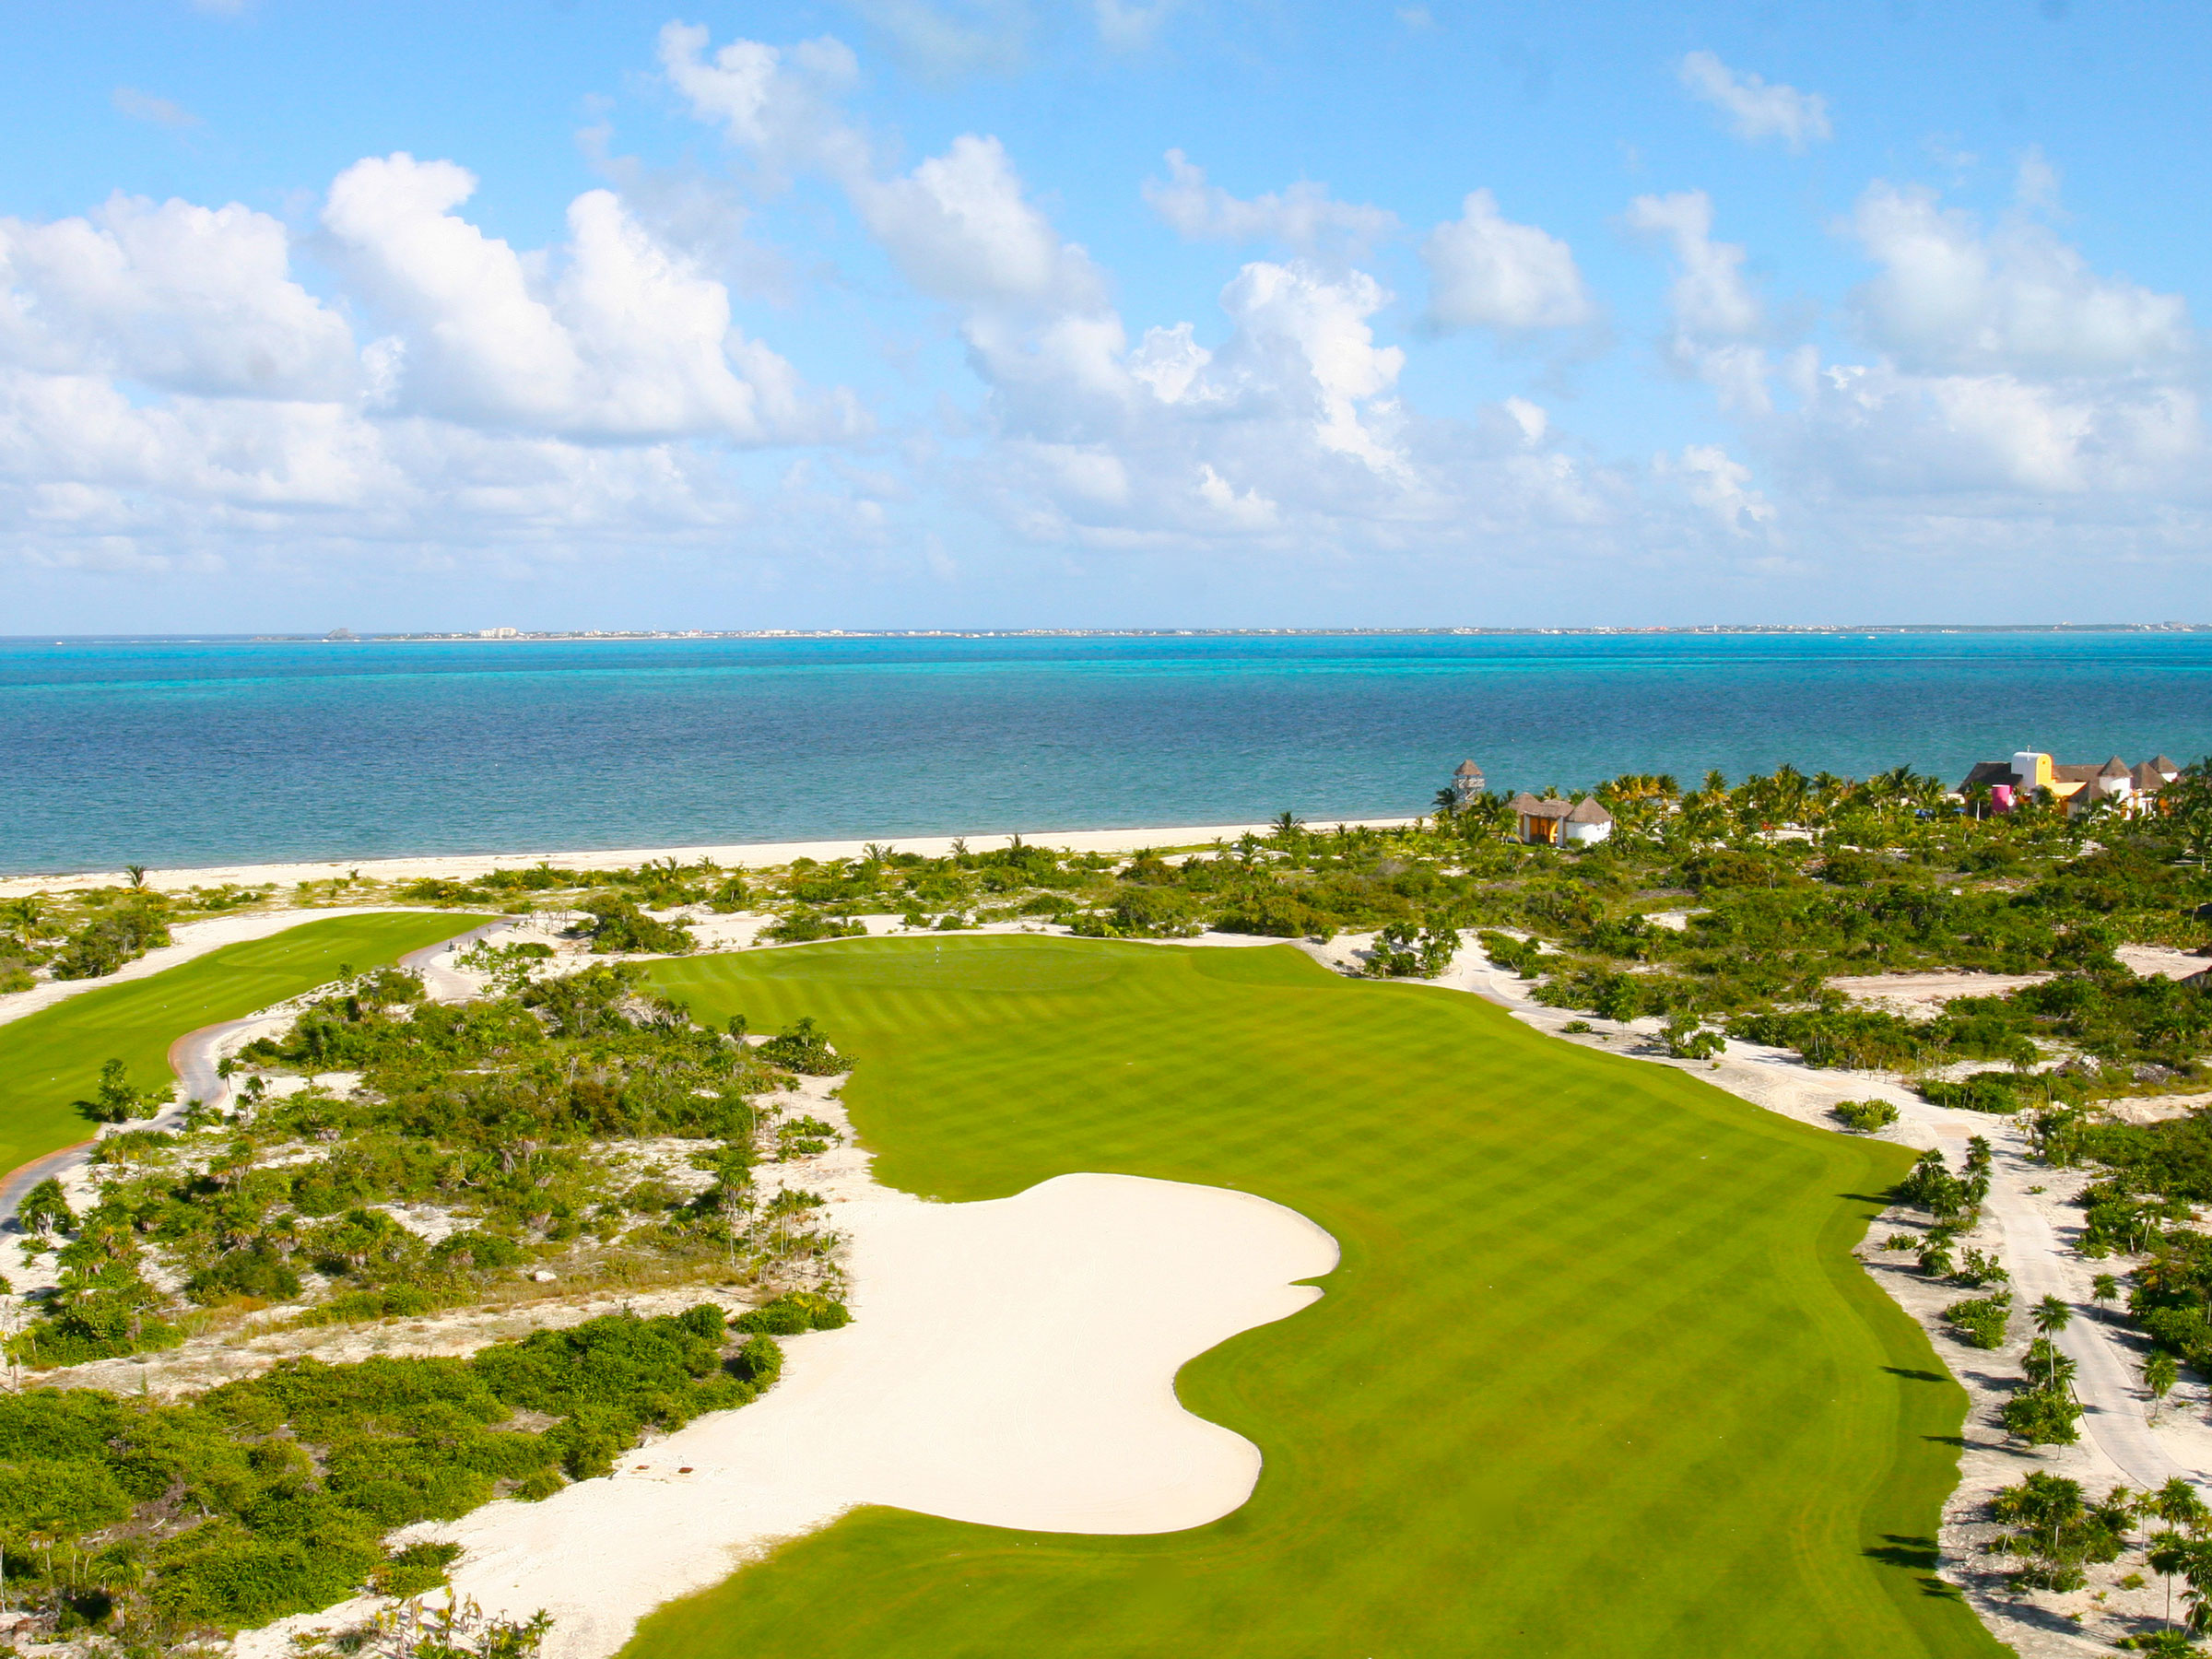 Vacaciones y Golf en Cancun